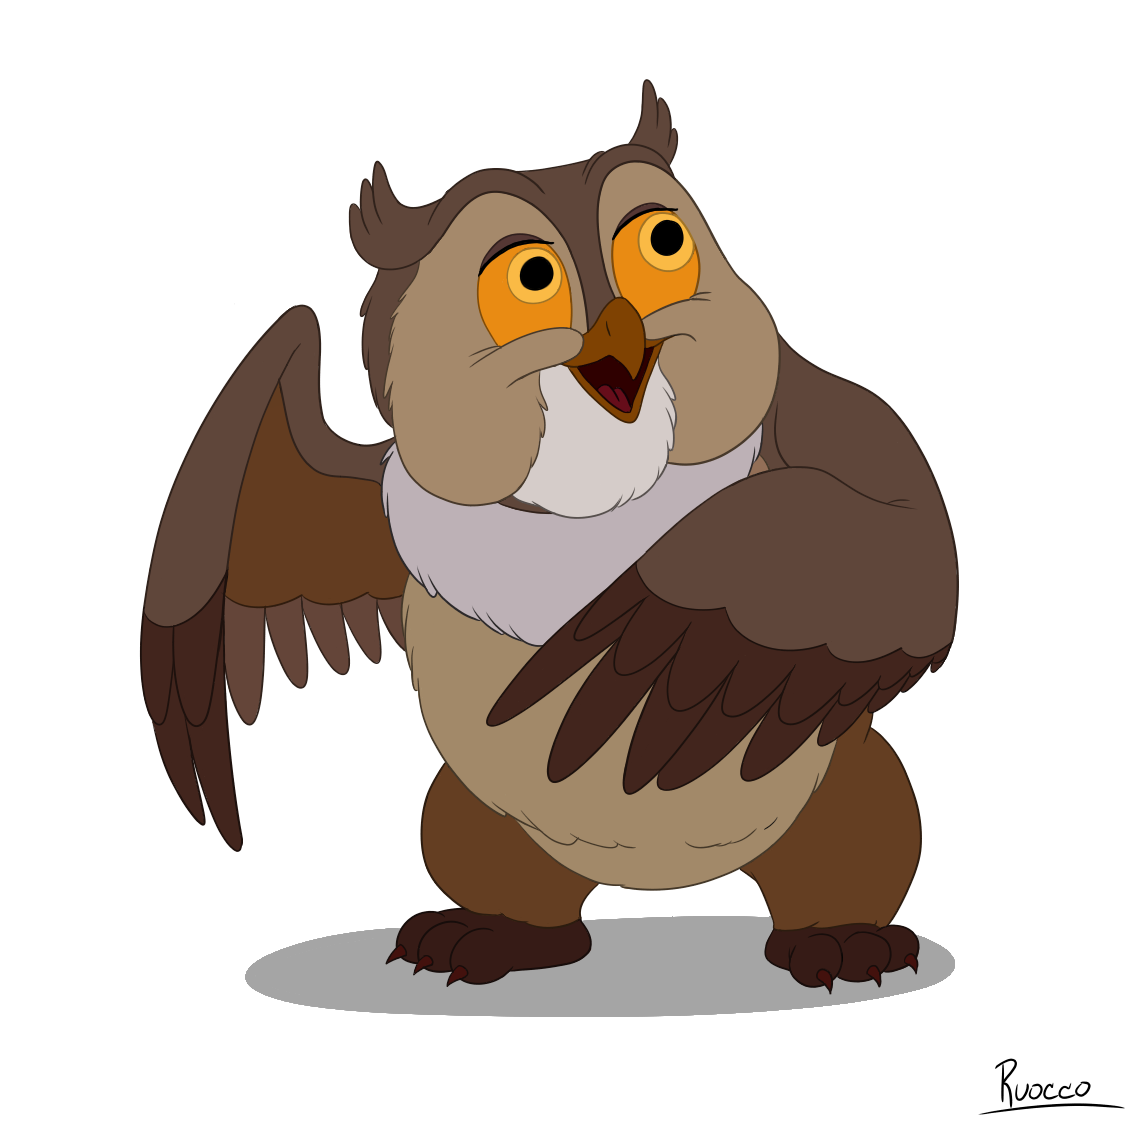 Animatted owl for the. Dozing dog clipart